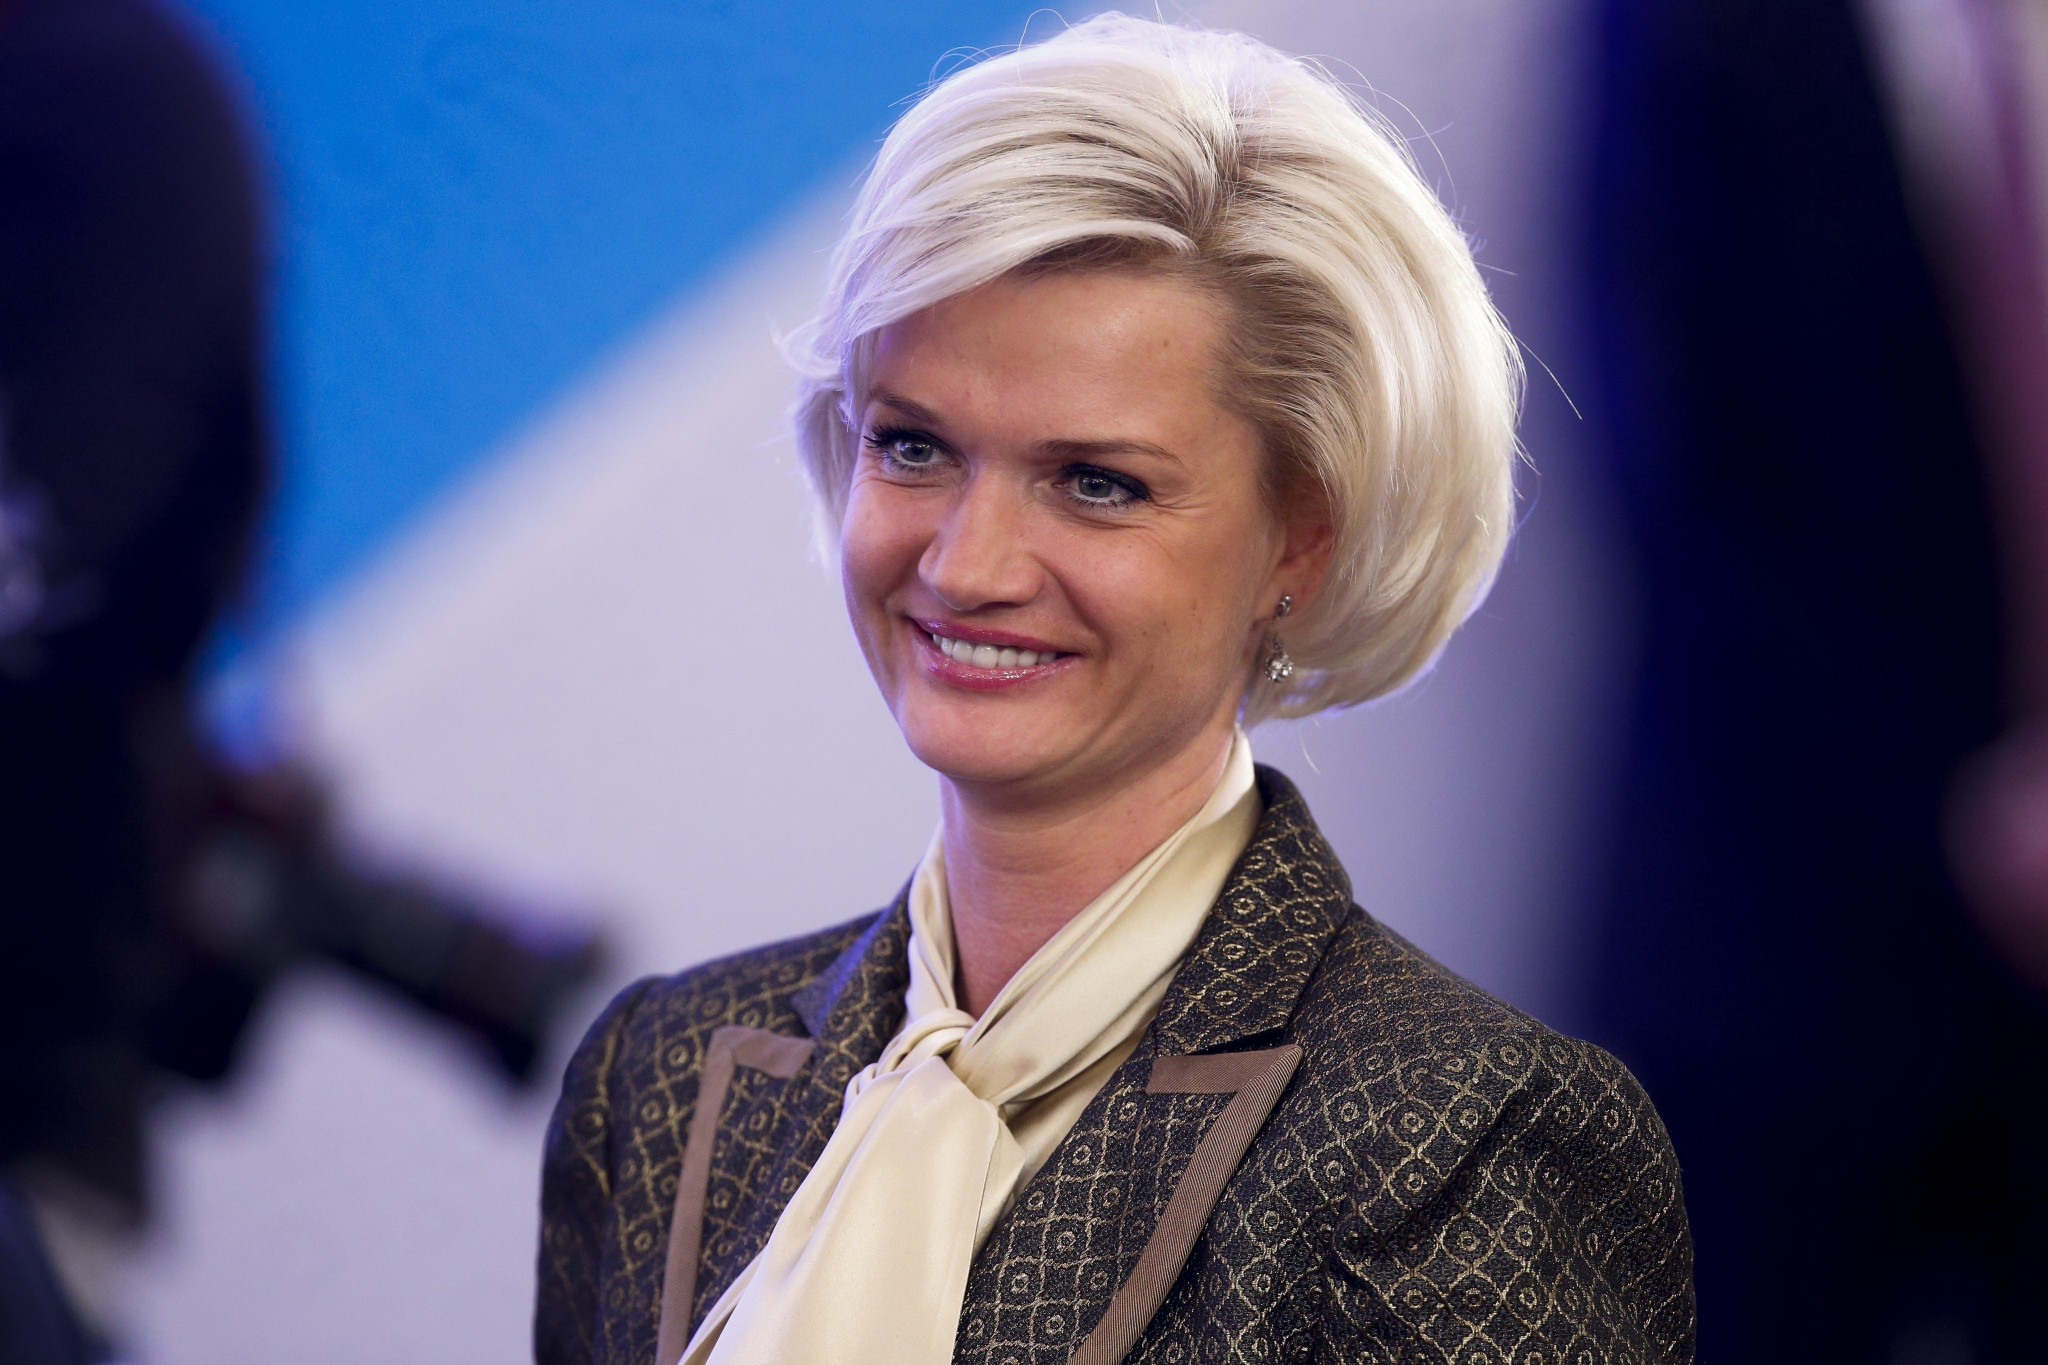 Former Russian gymnast Svetlana Khorkina has made a controversial claim about the postponement of the Tokyo 2020 Olympic and Paralympic Games ©Getty Images